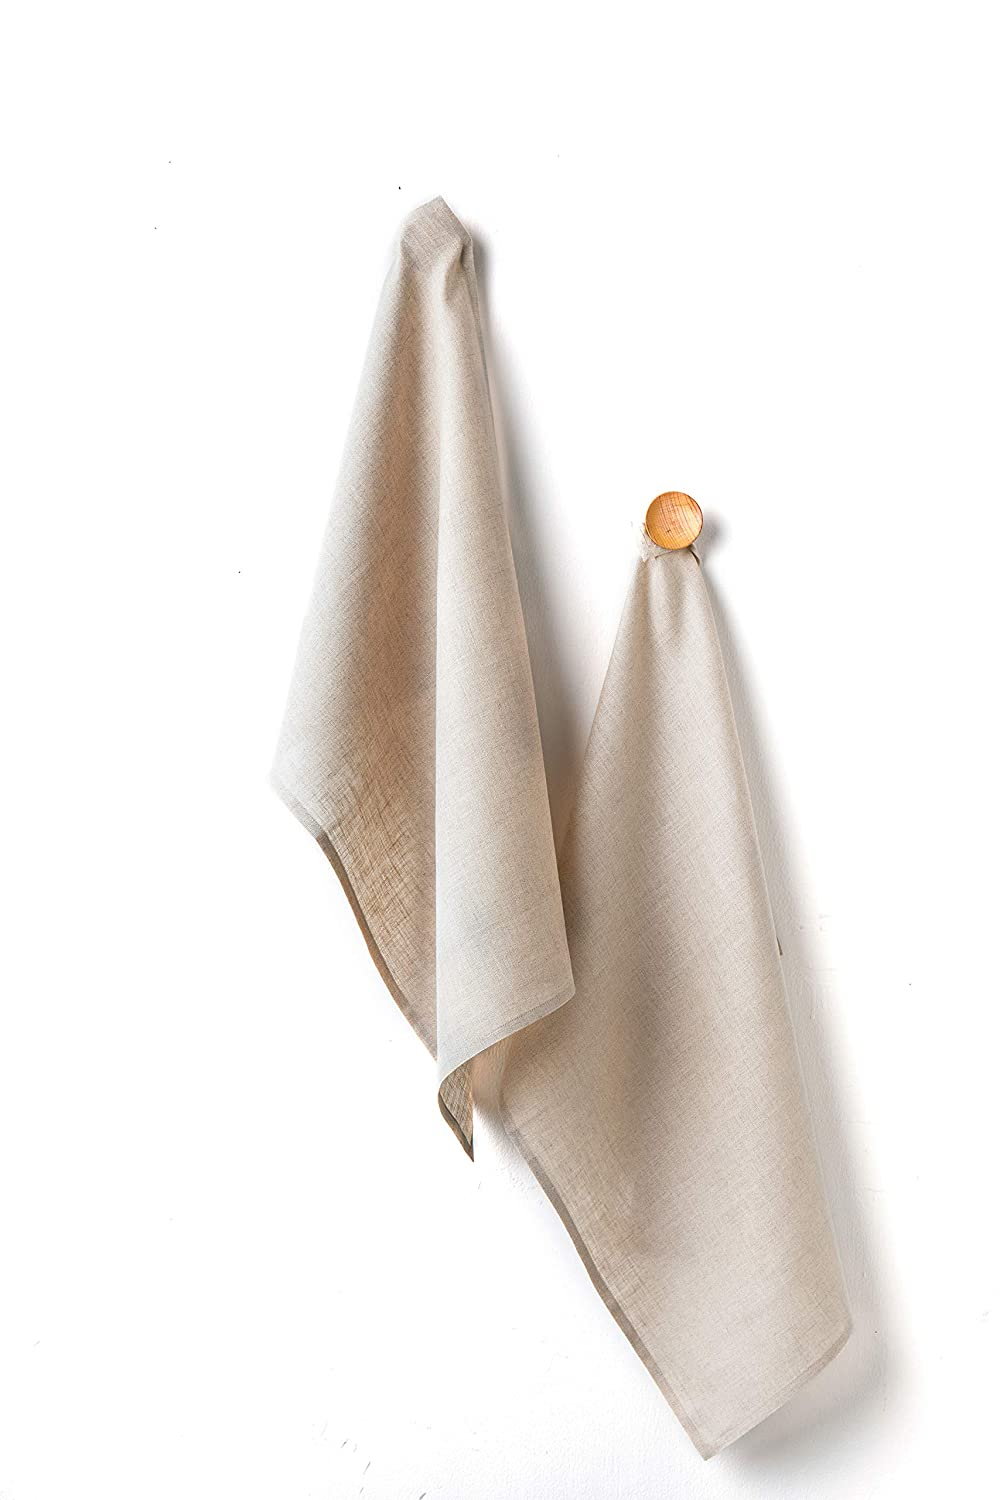 Solino Home Linen Kitchen Towel - 100% Pure Linen 17 x 26 Inch Set of 2 - Natural Fabric Handcrafted, Natural